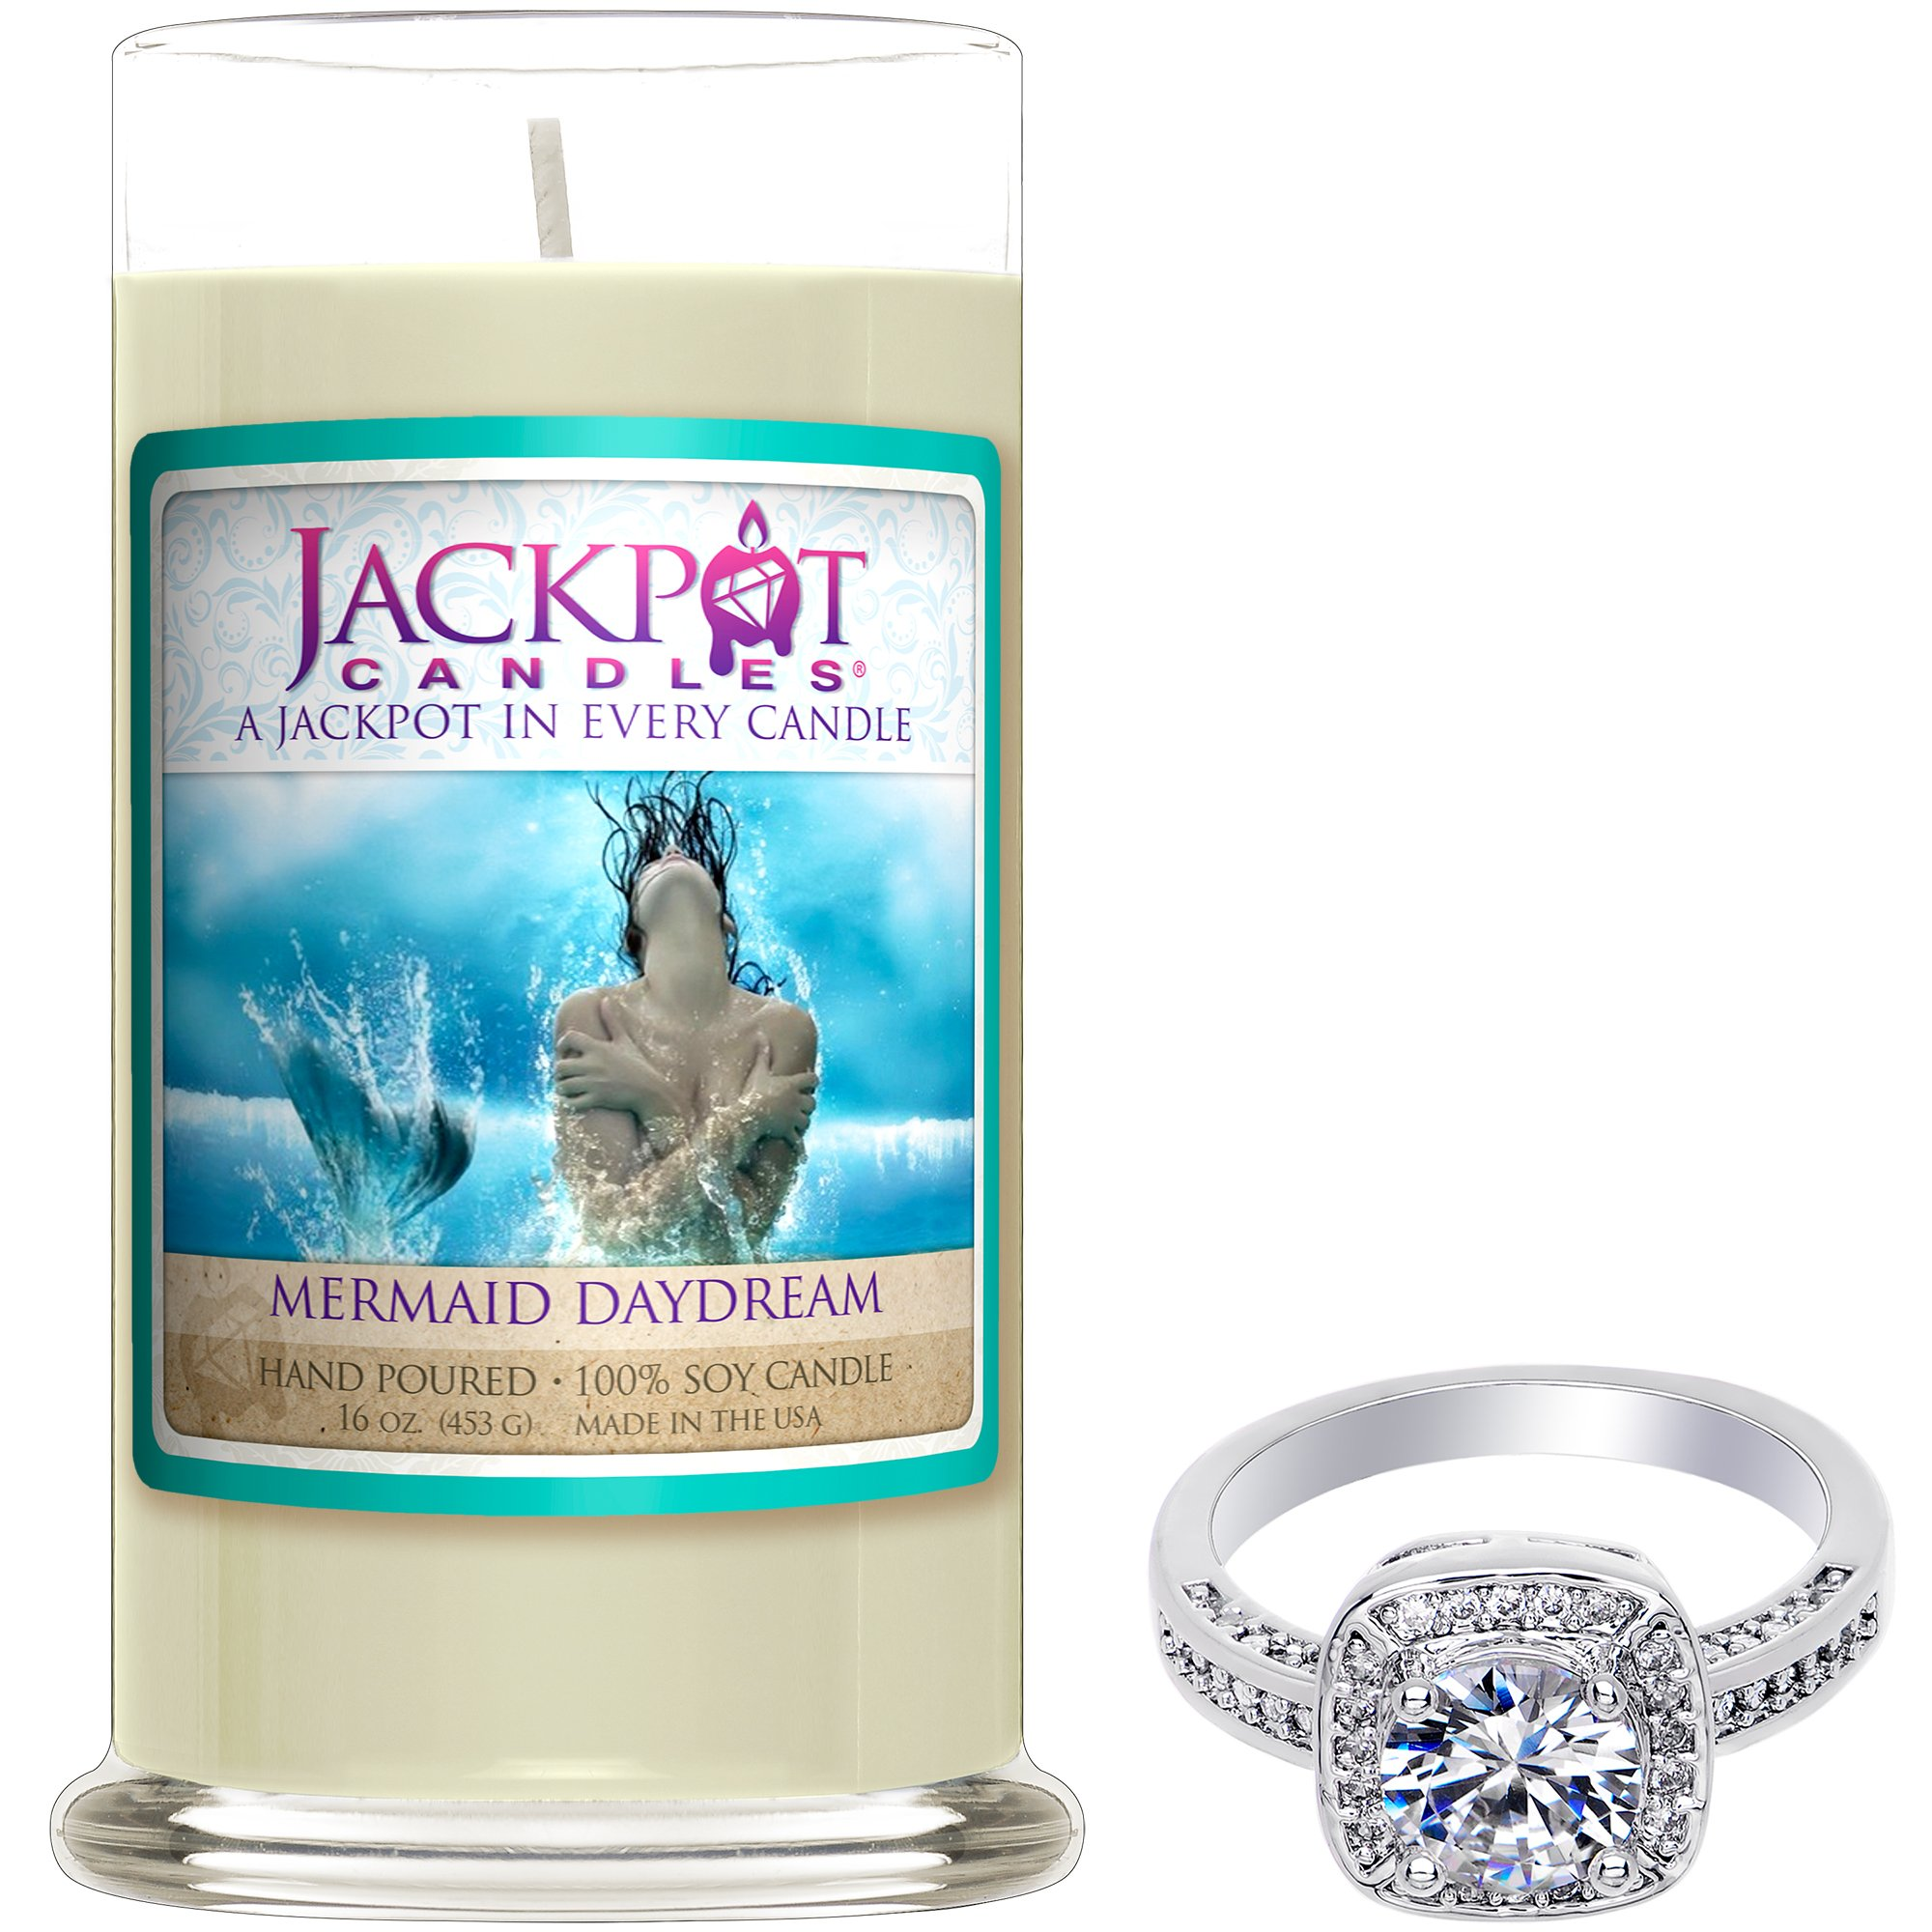 Mermaid Day Dream Candle with Ring Inside (Surprise Jewelry Valued at 15 to 5,000) Surprise Ring Size